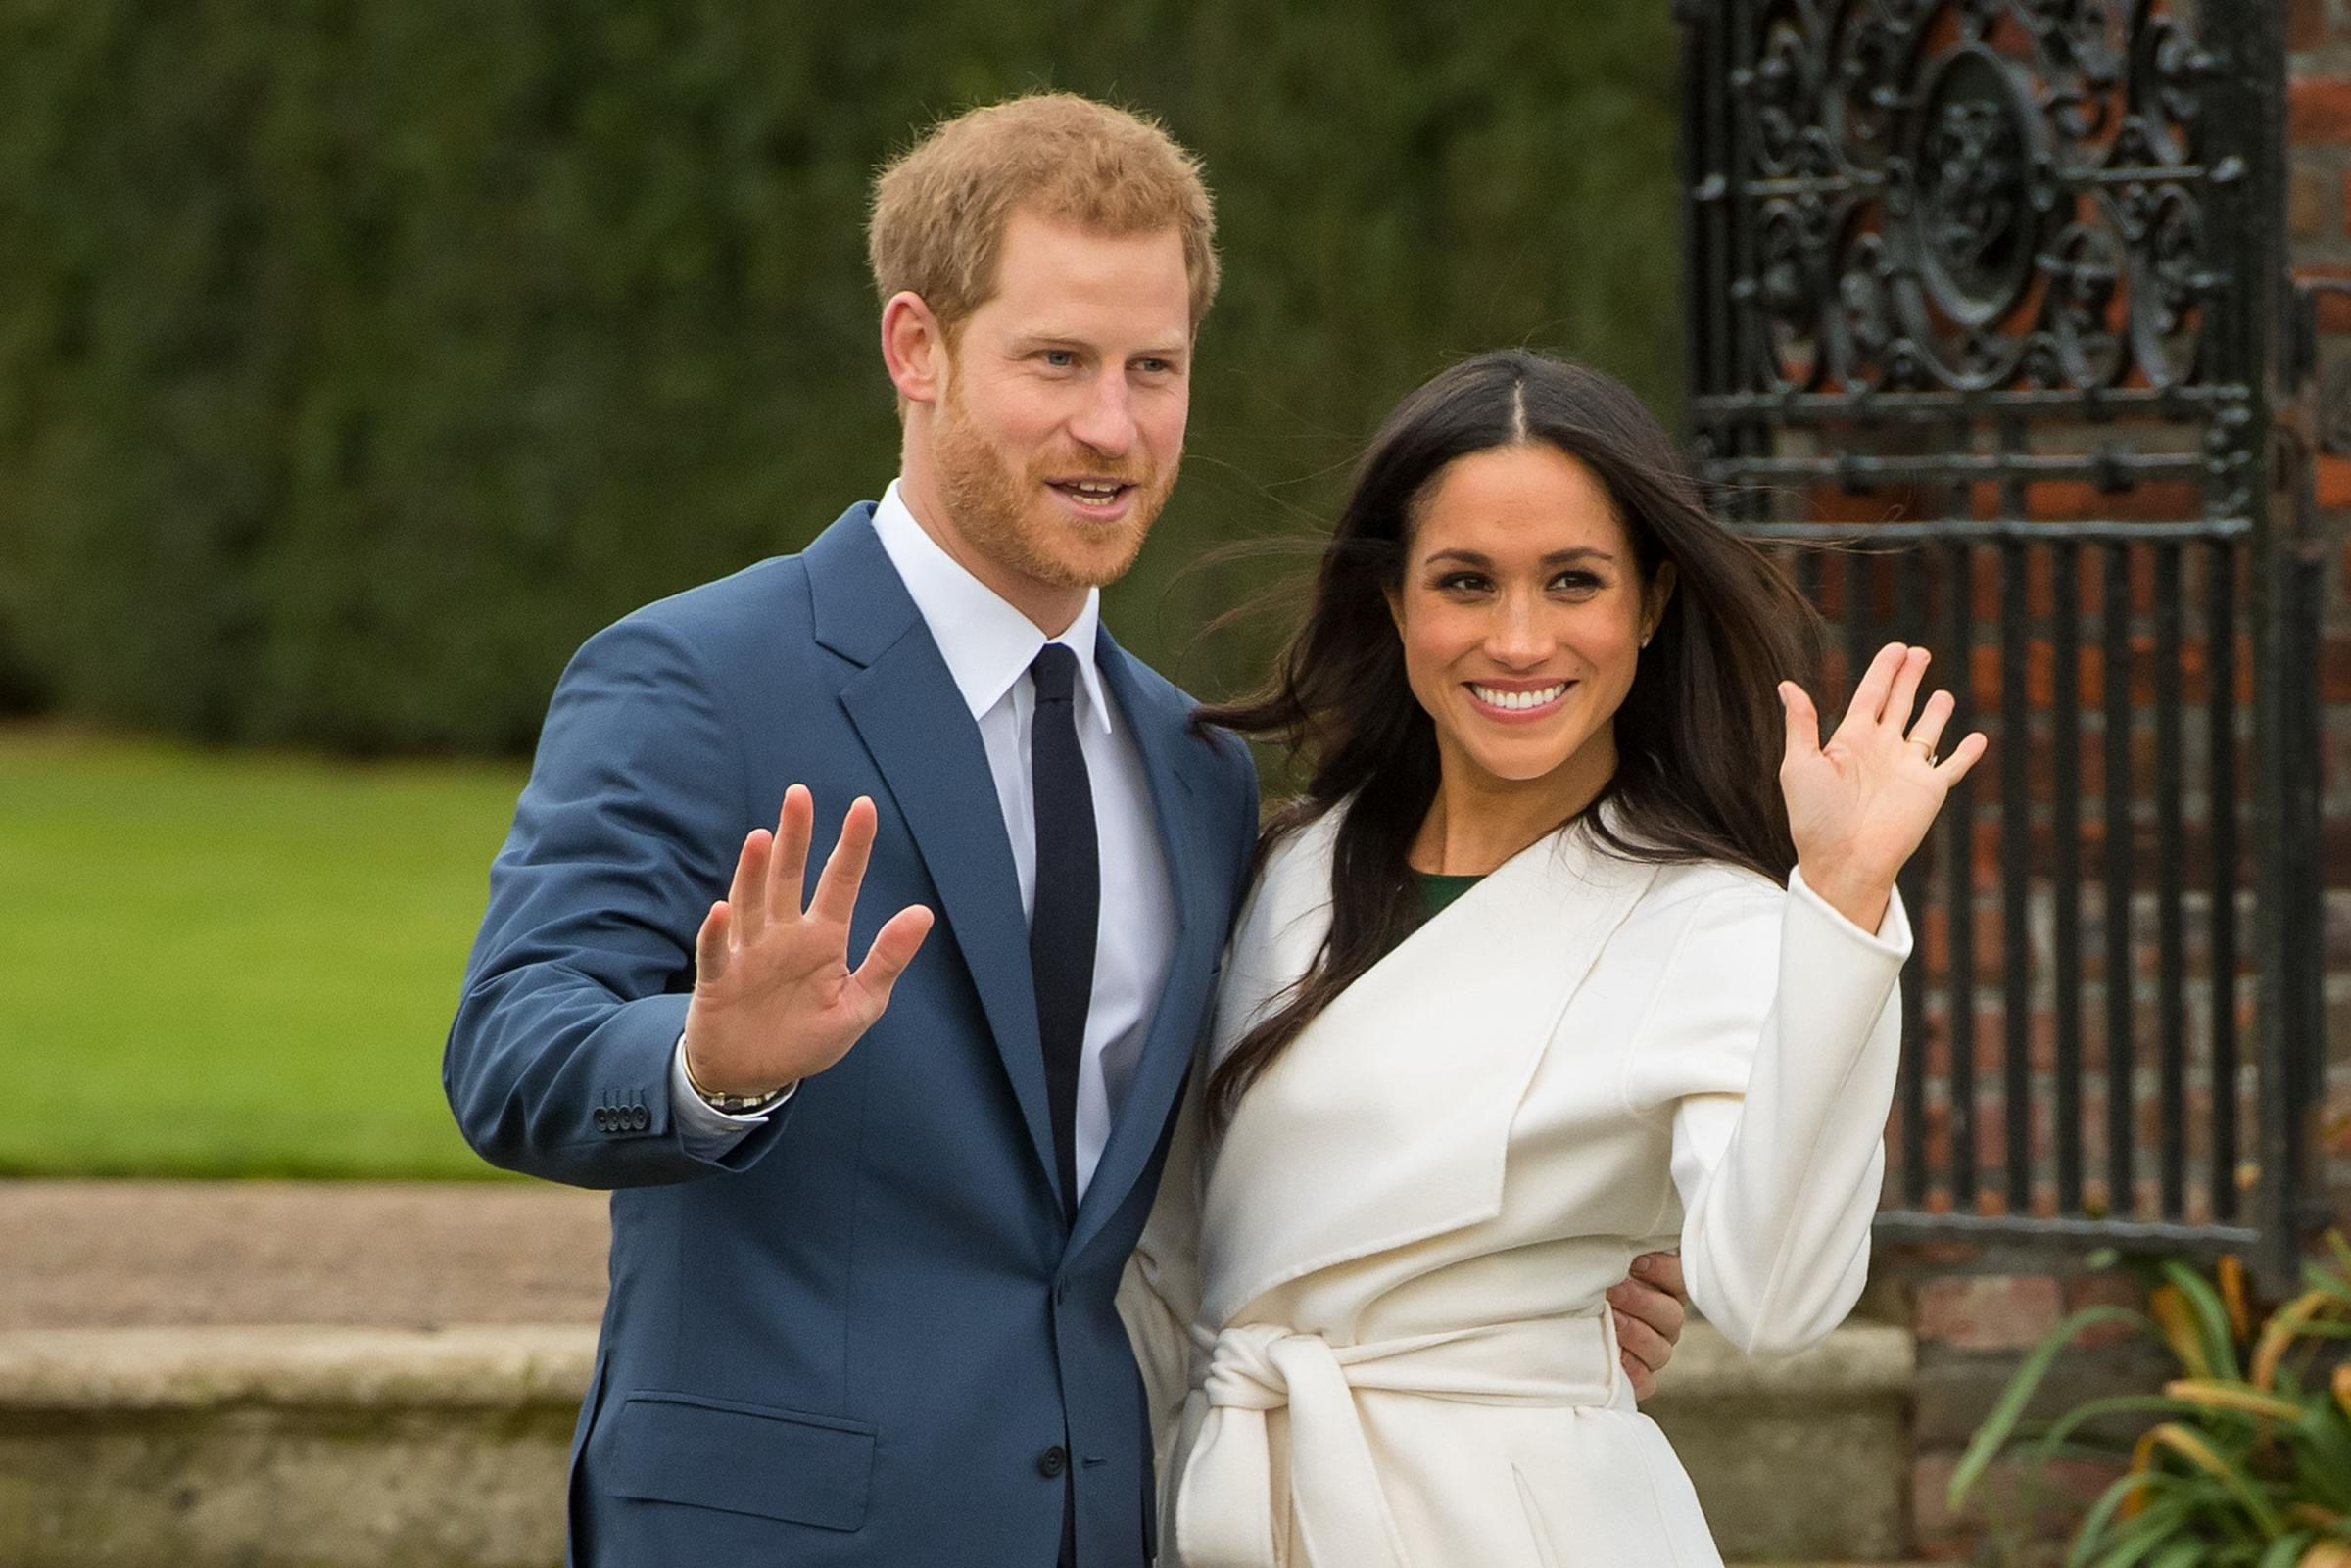 Revealed: Number of Scots NOT interested in royal wedding